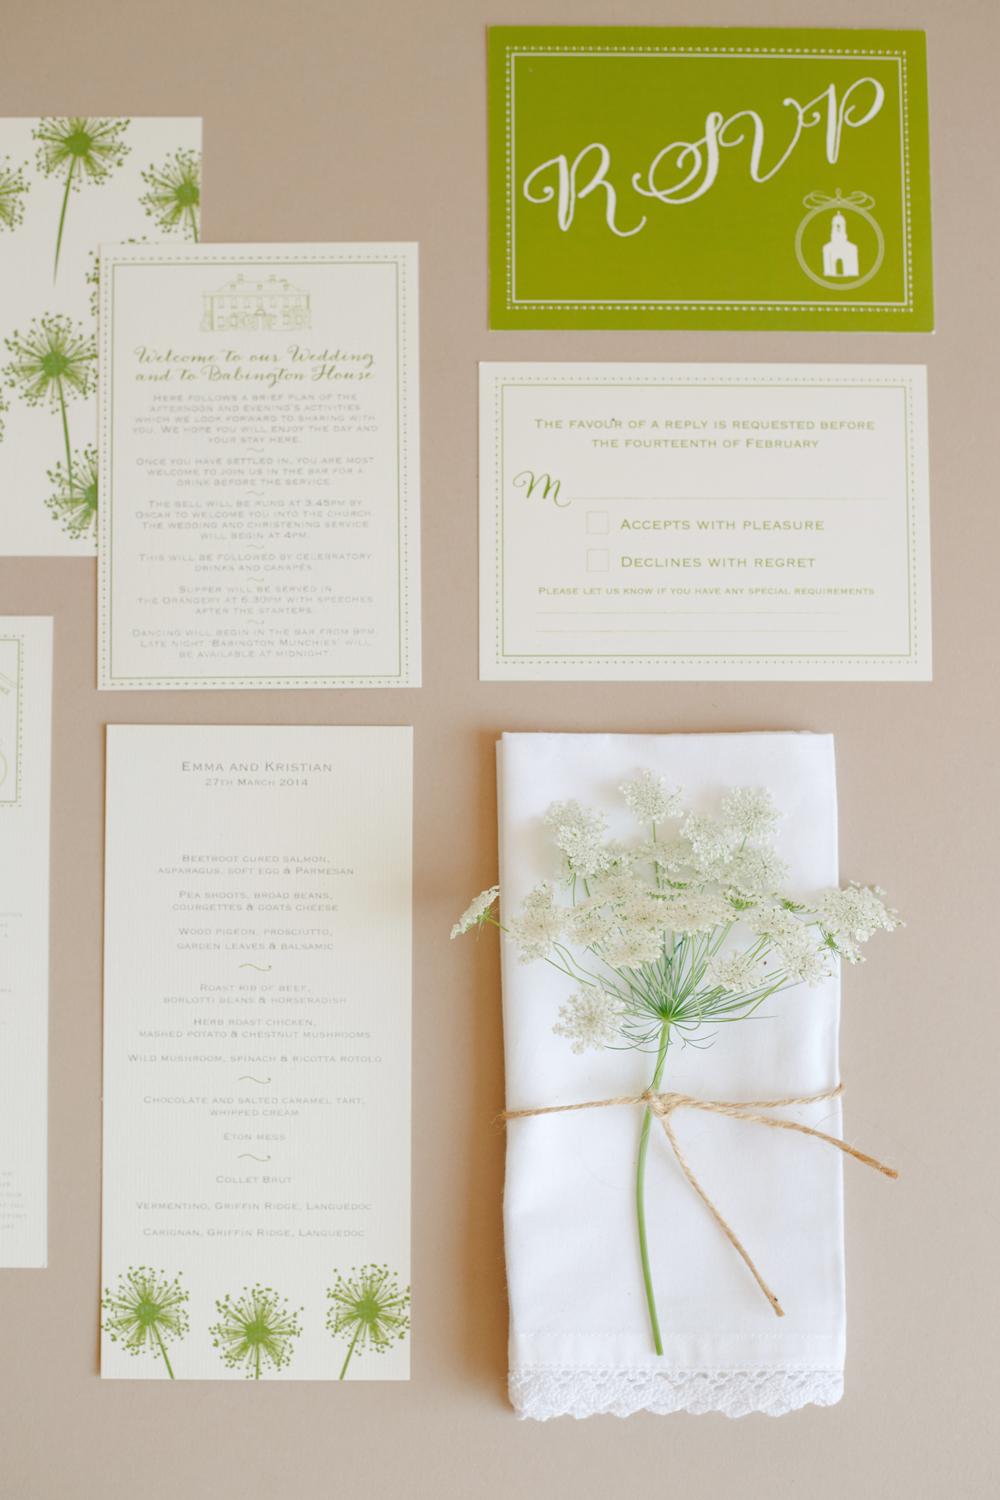 Emma and Kristian's bespoke wedding stationery for their Babington House wedding